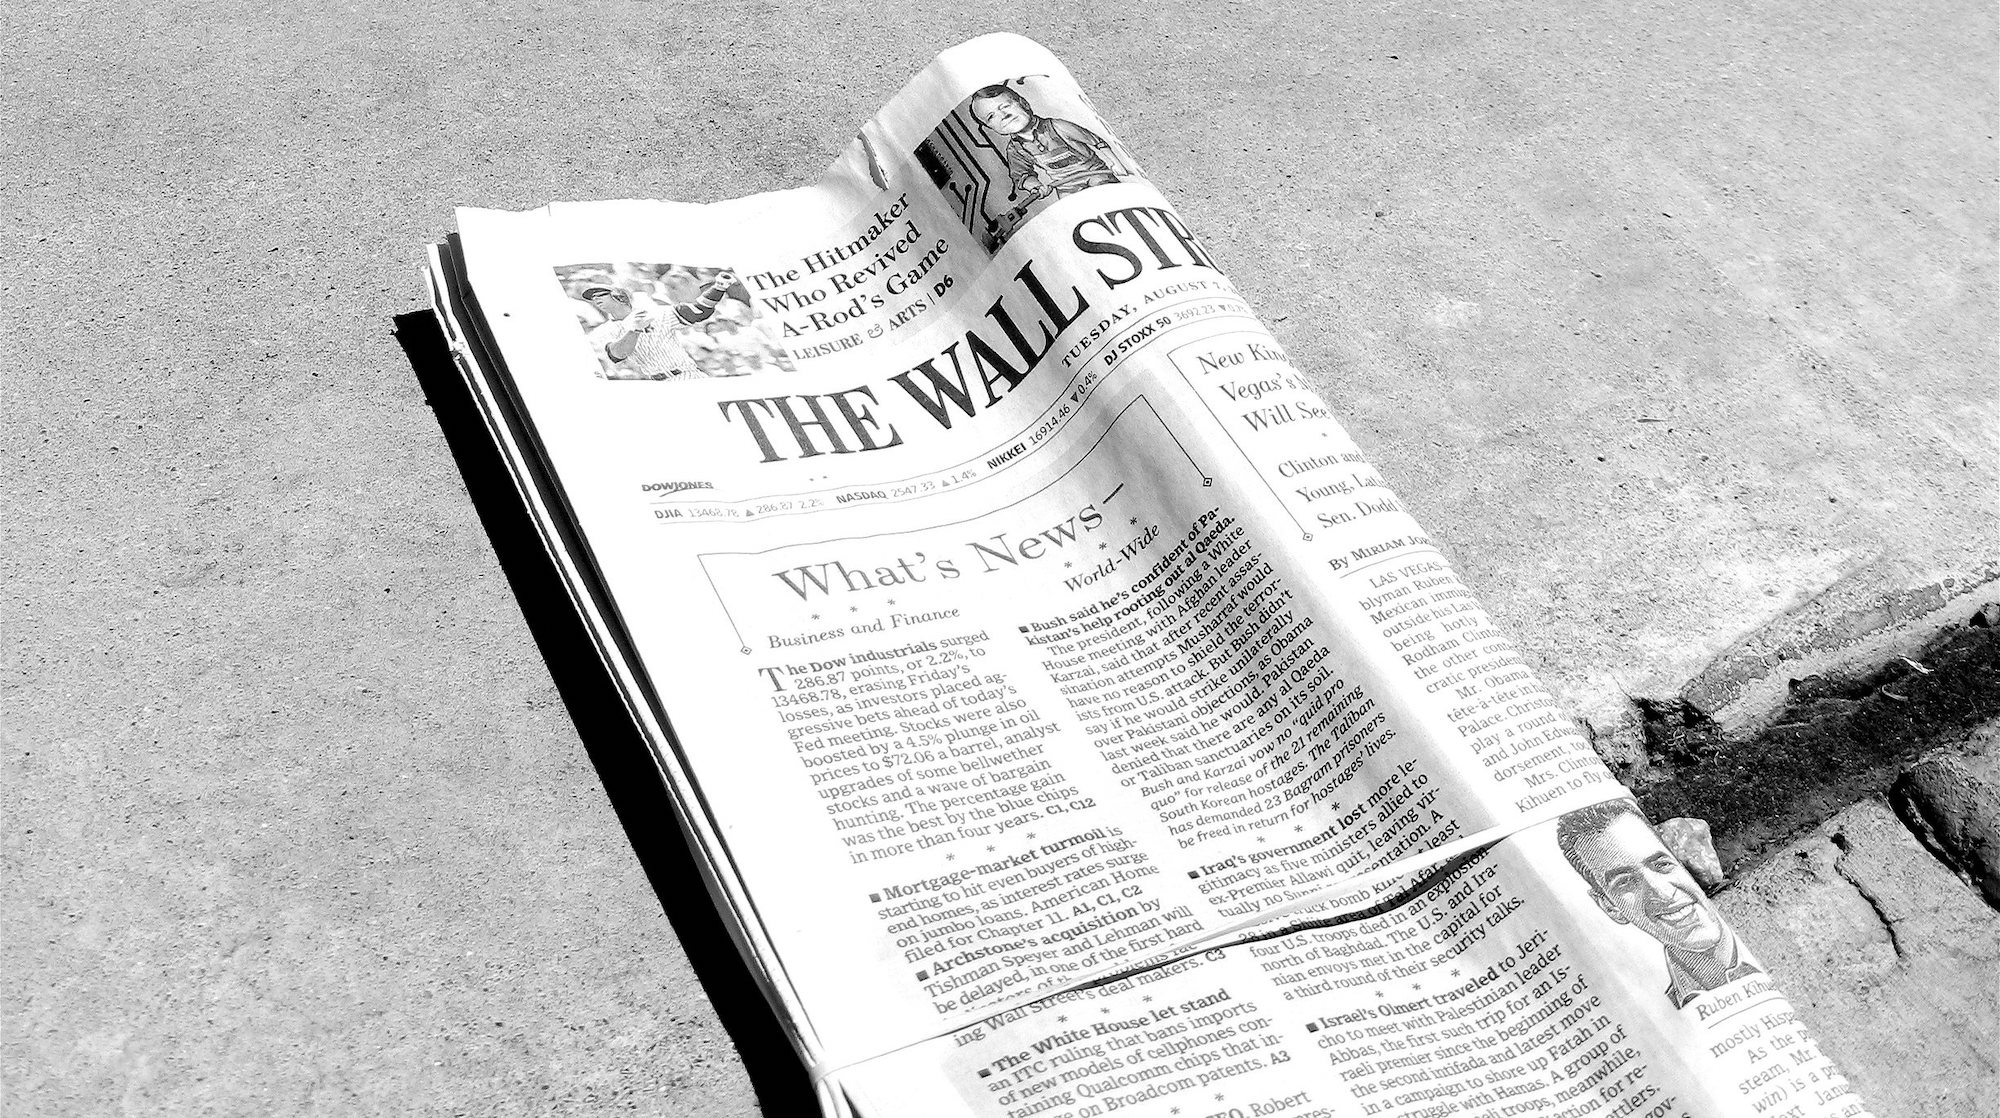 The Wall Street Journal joins The New York Times in the 2 ...